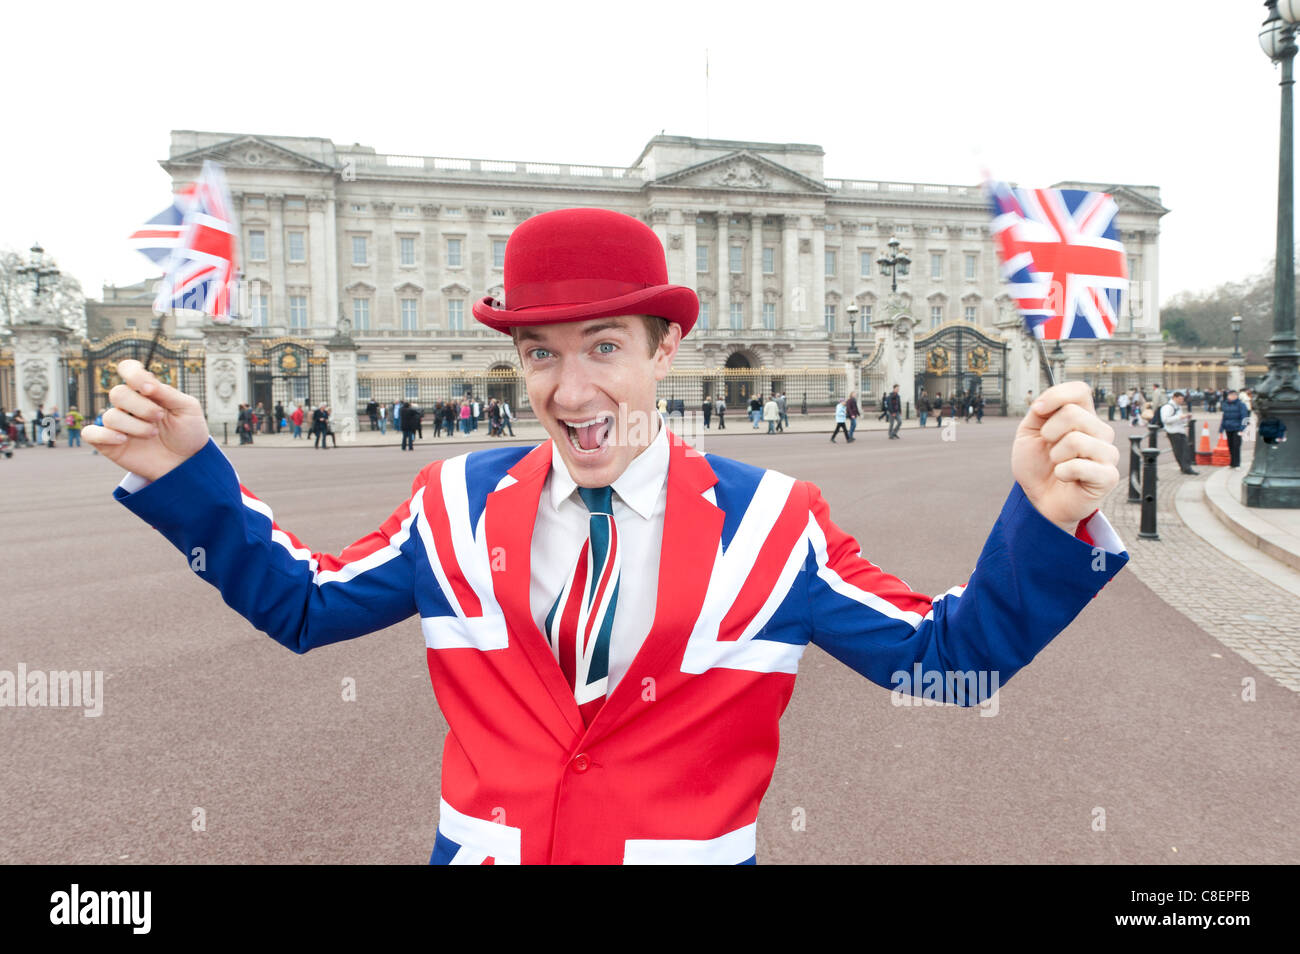 British patriotic royalist waves his flags at Buckingham Palace - Stock Image